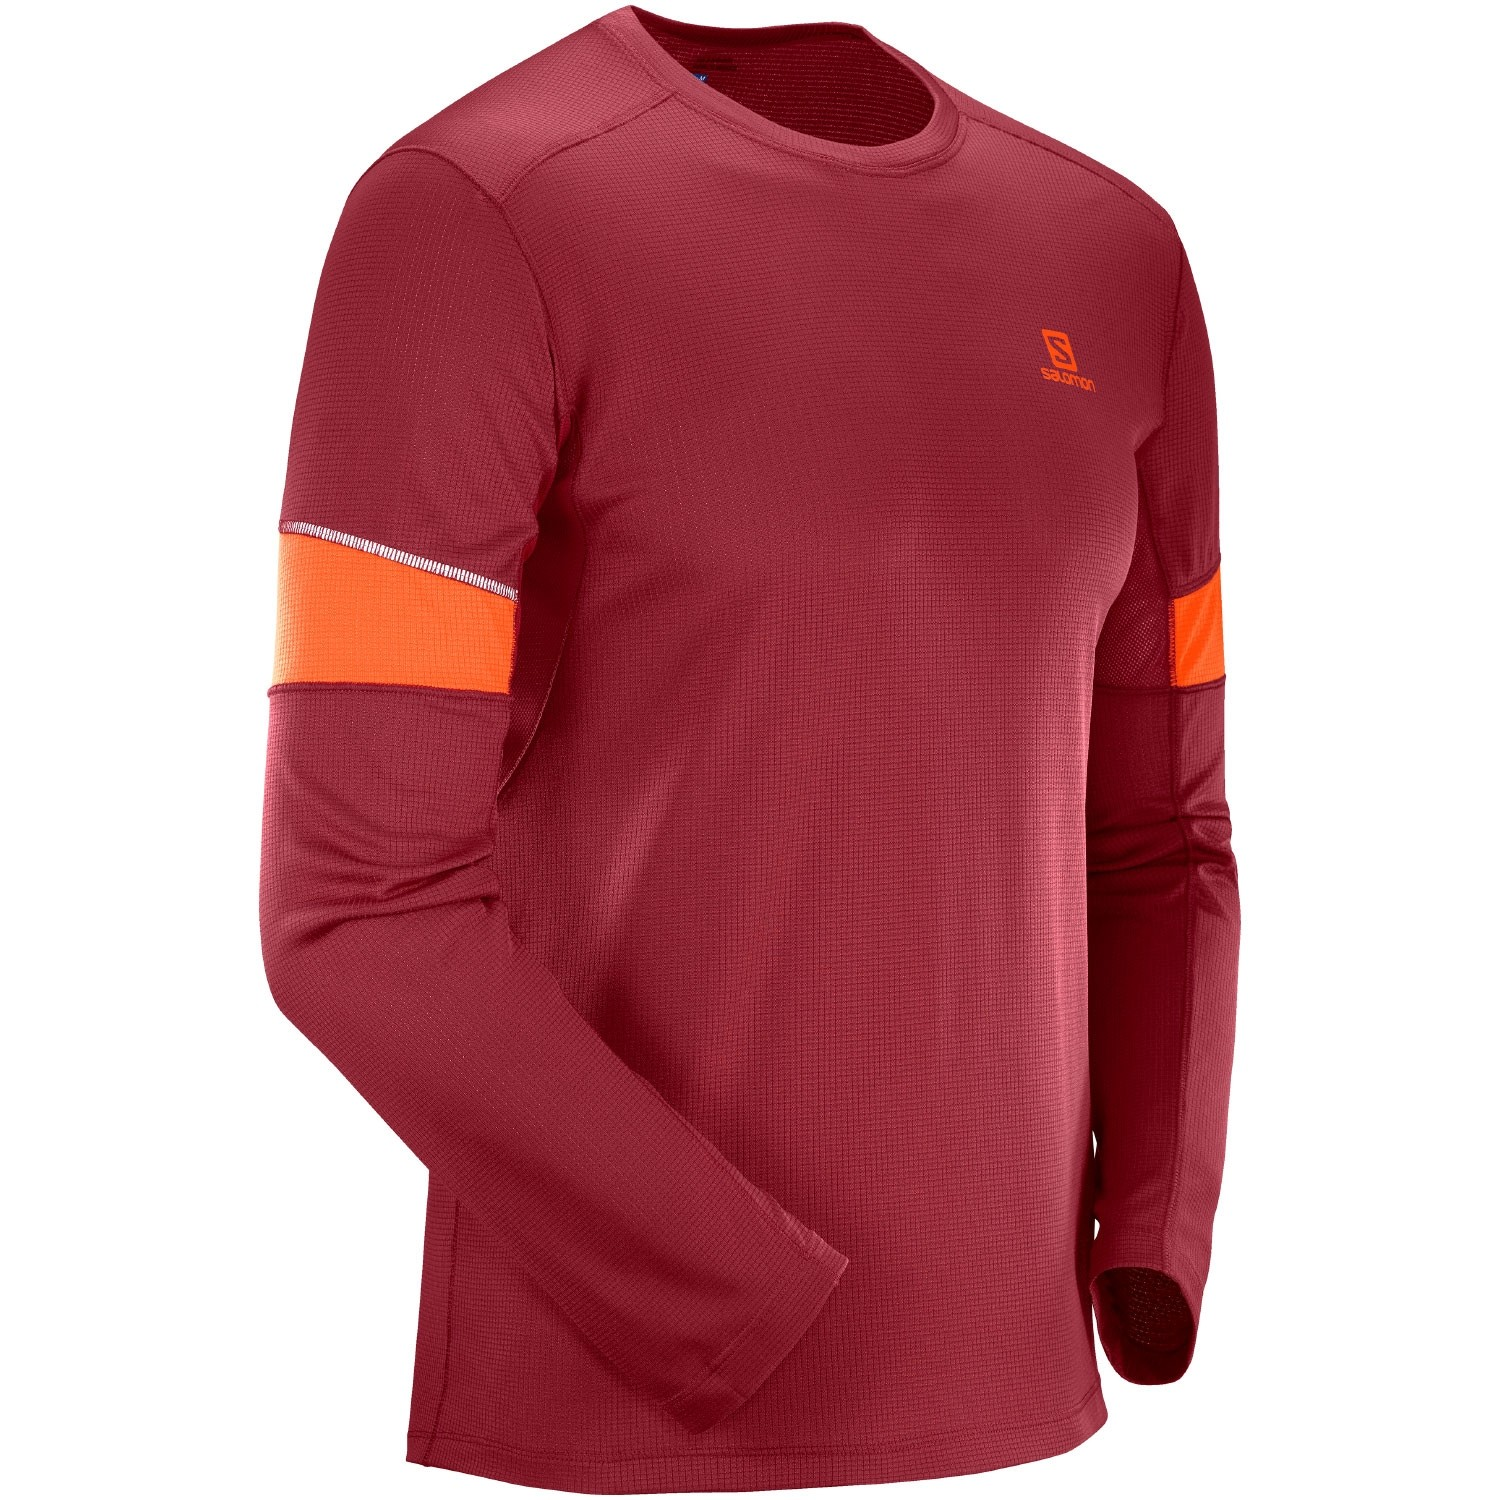 Salomon Agile LS Tee -  Biking Red